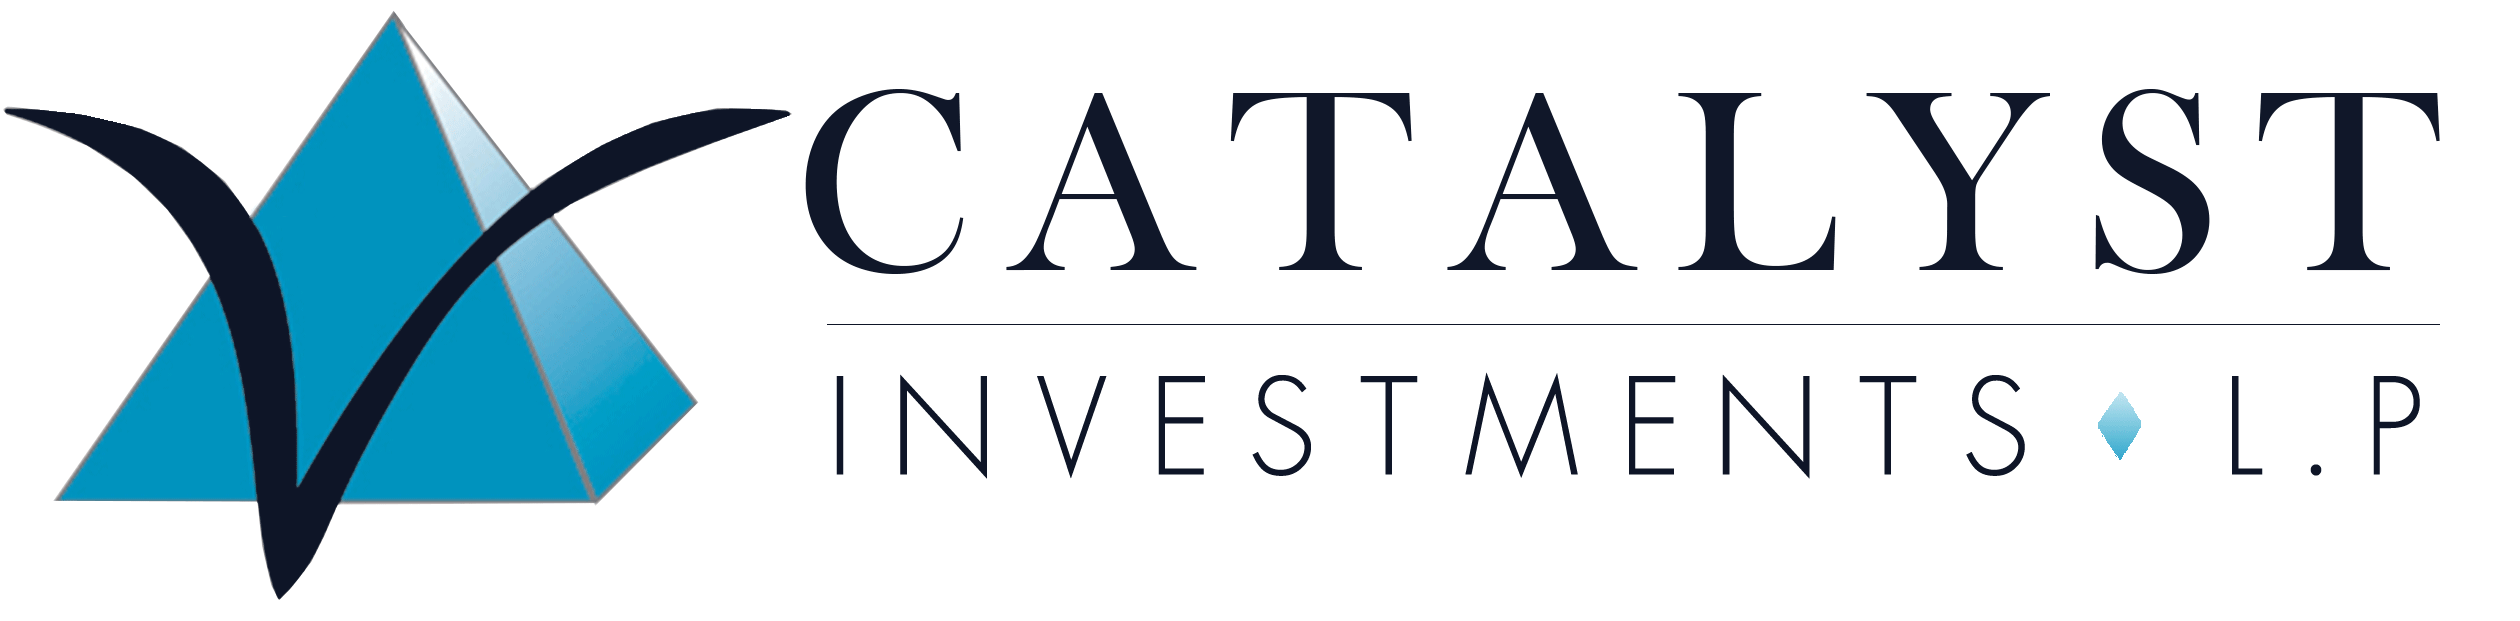 Catalyst Investments